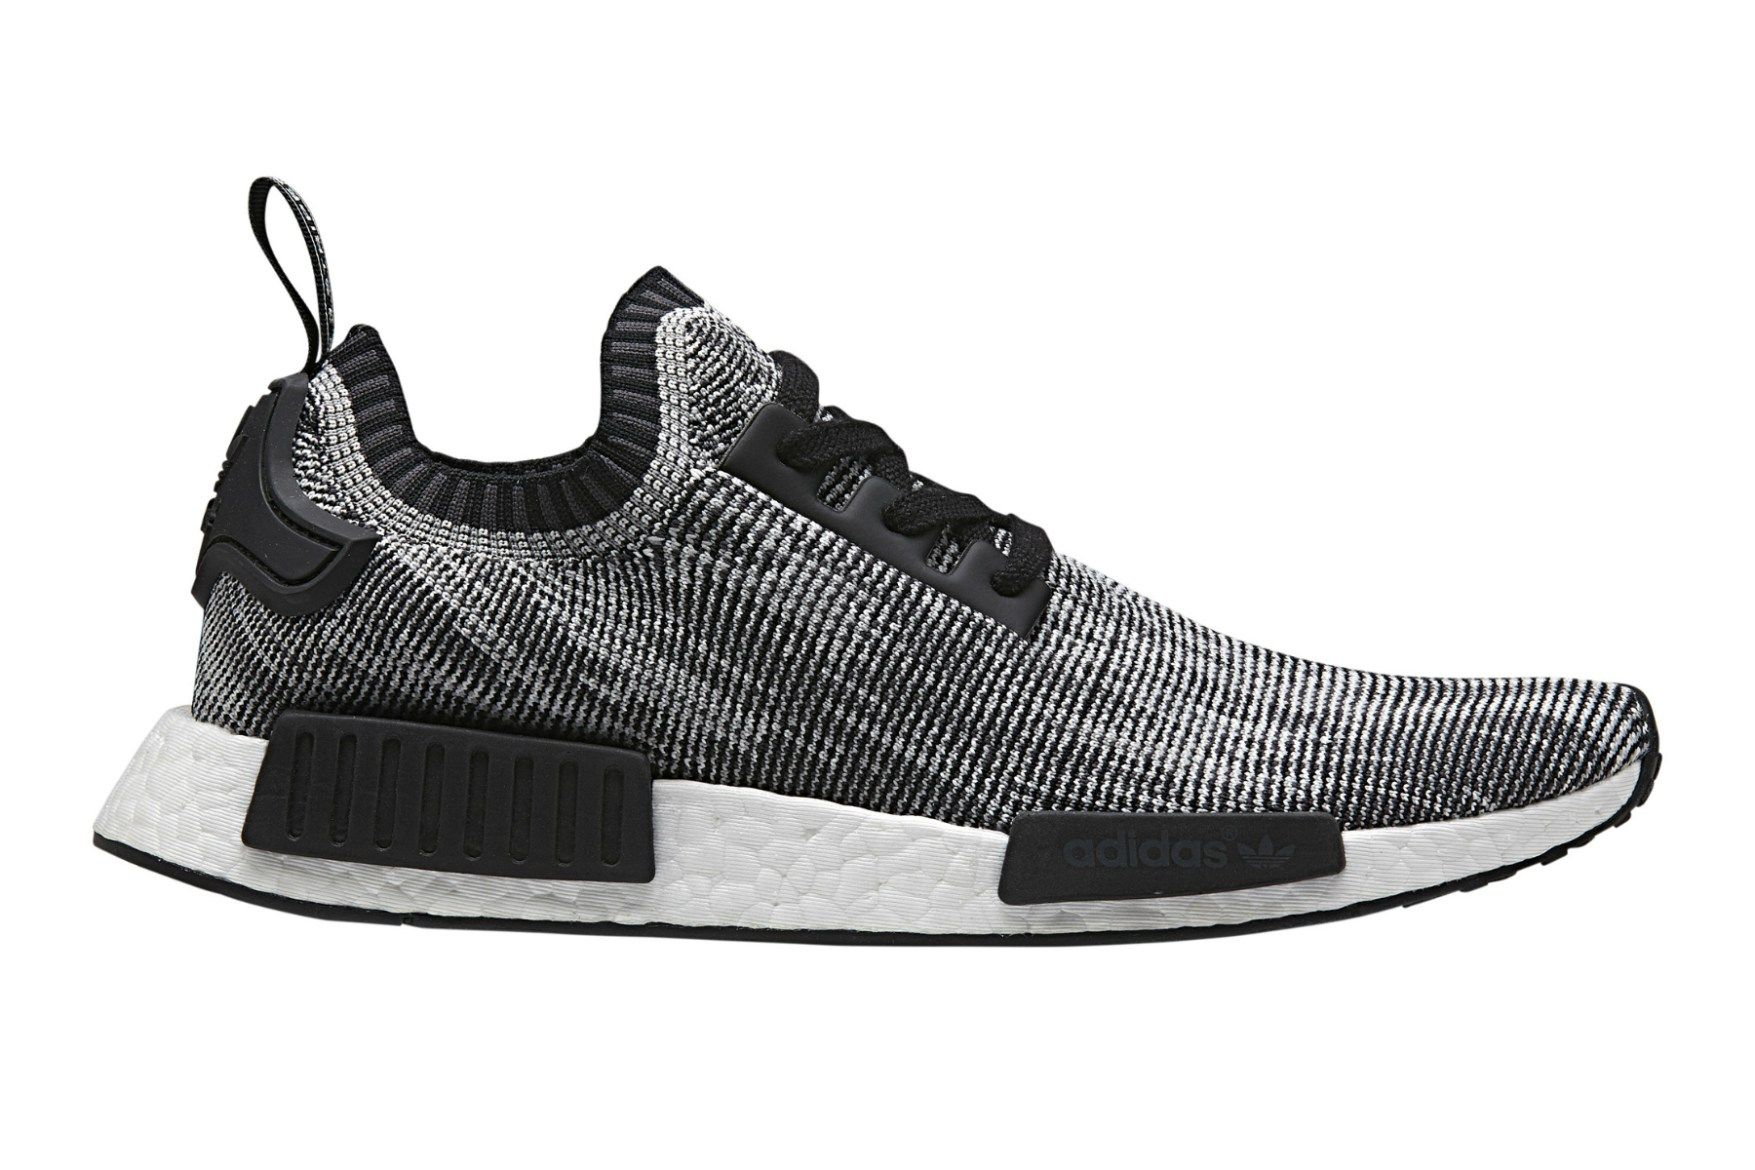 Nmd Adidas Black Grey